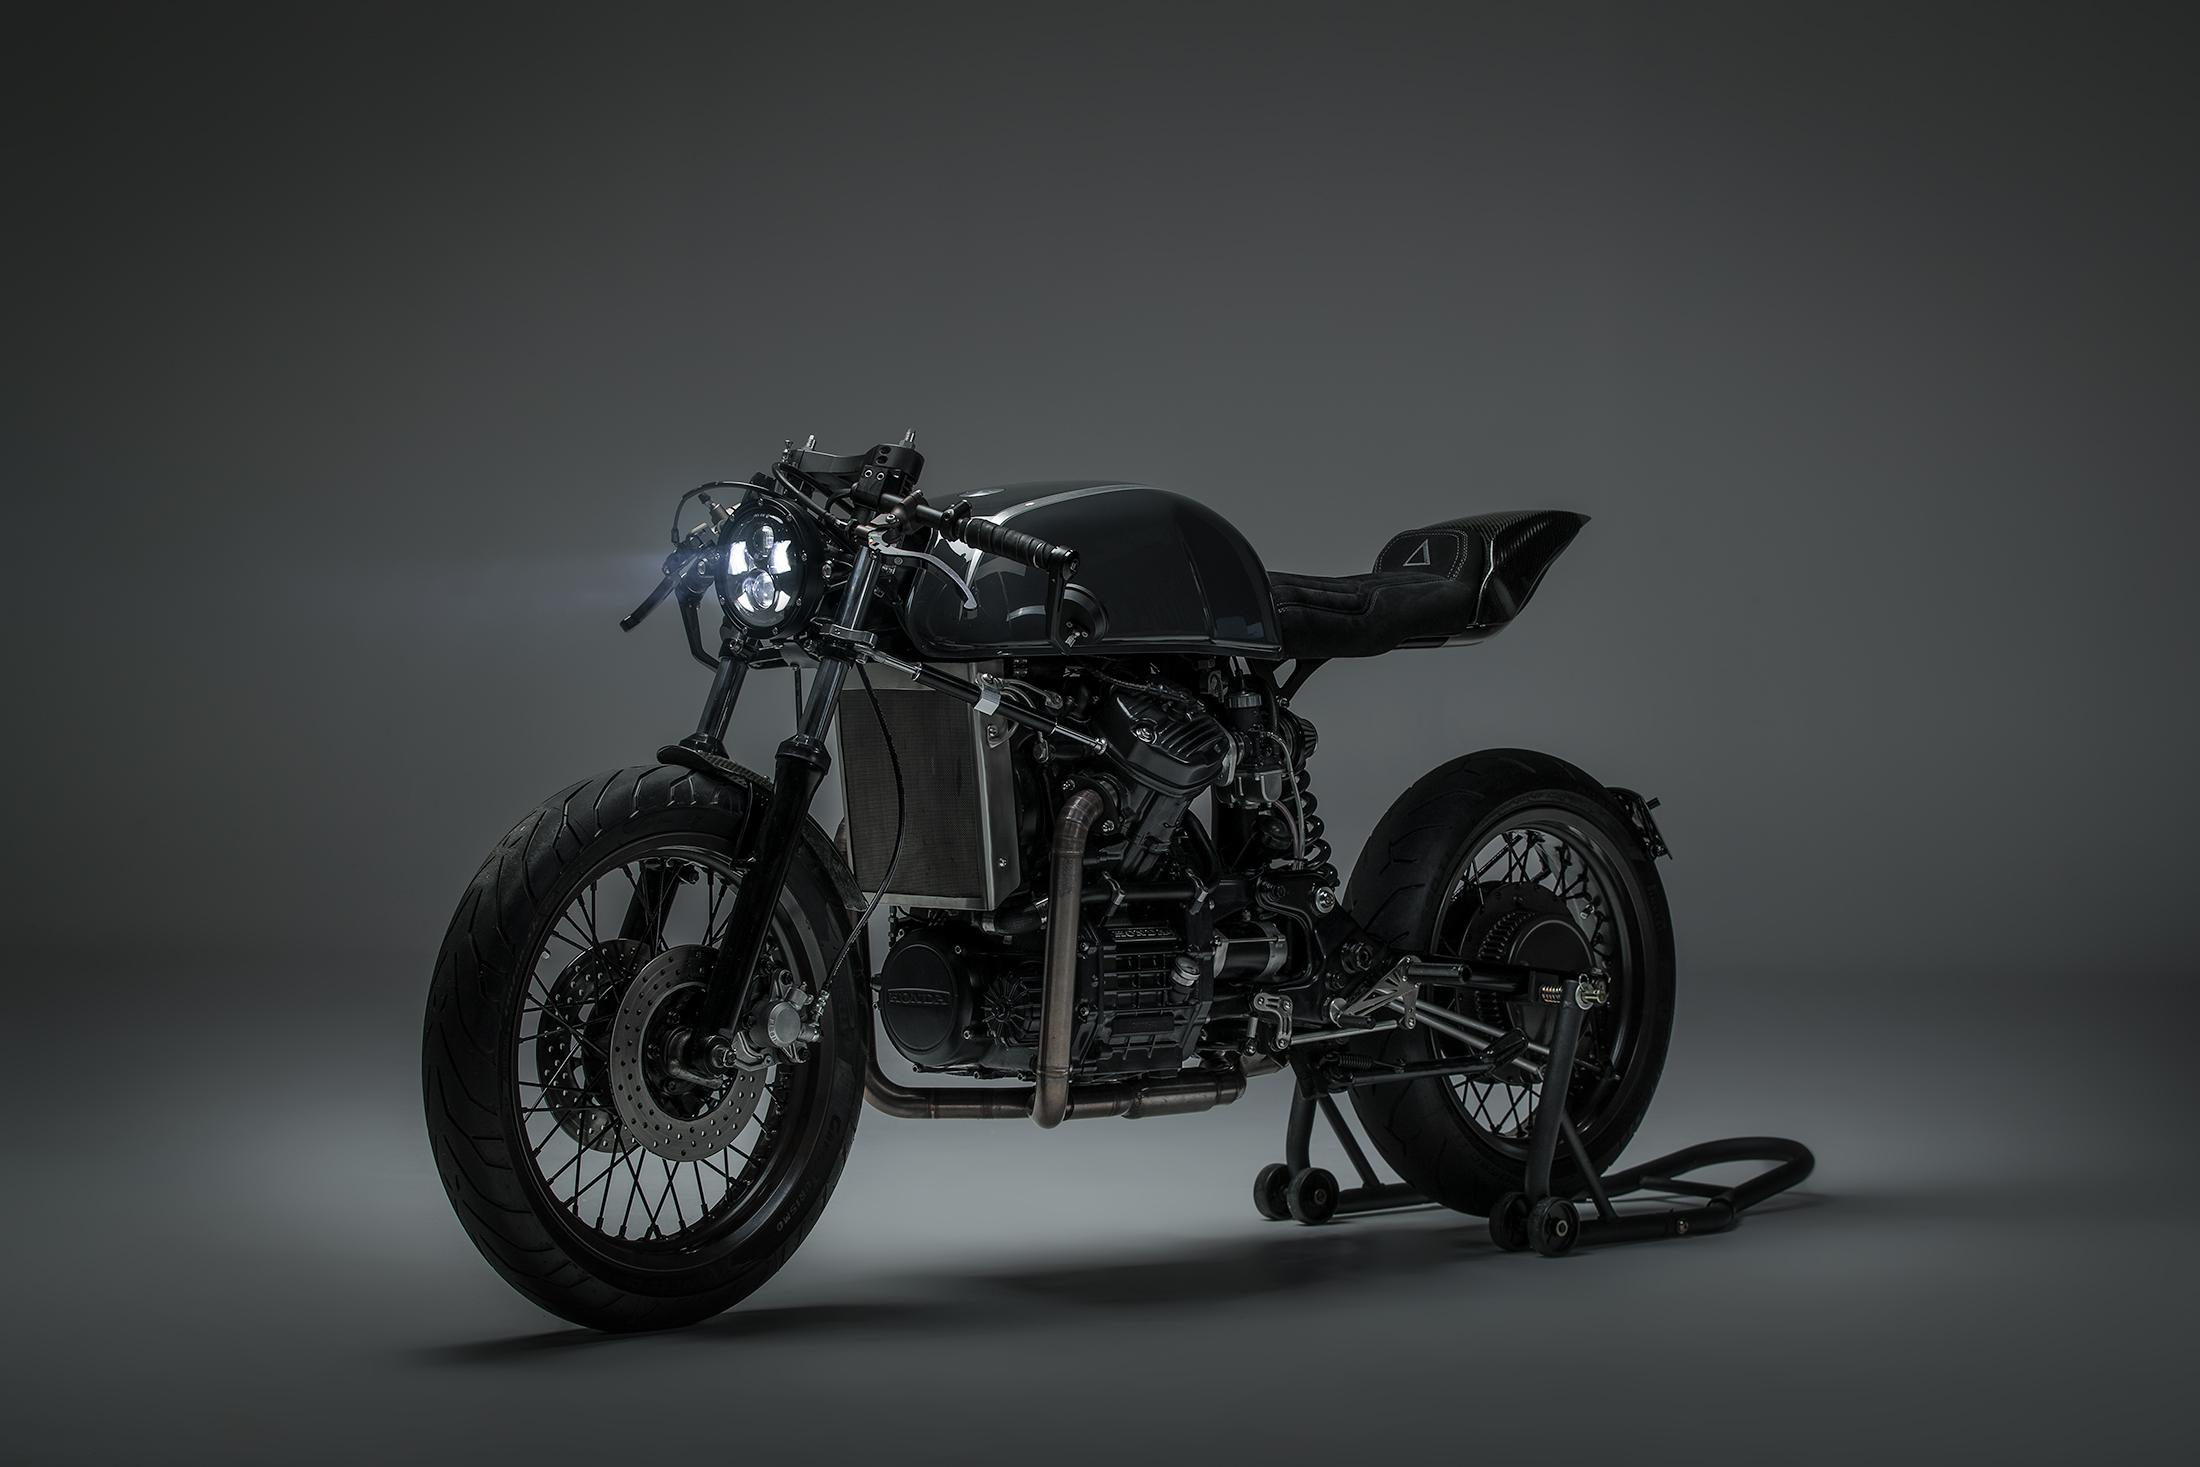 honda Cx500 cafe racer custom build